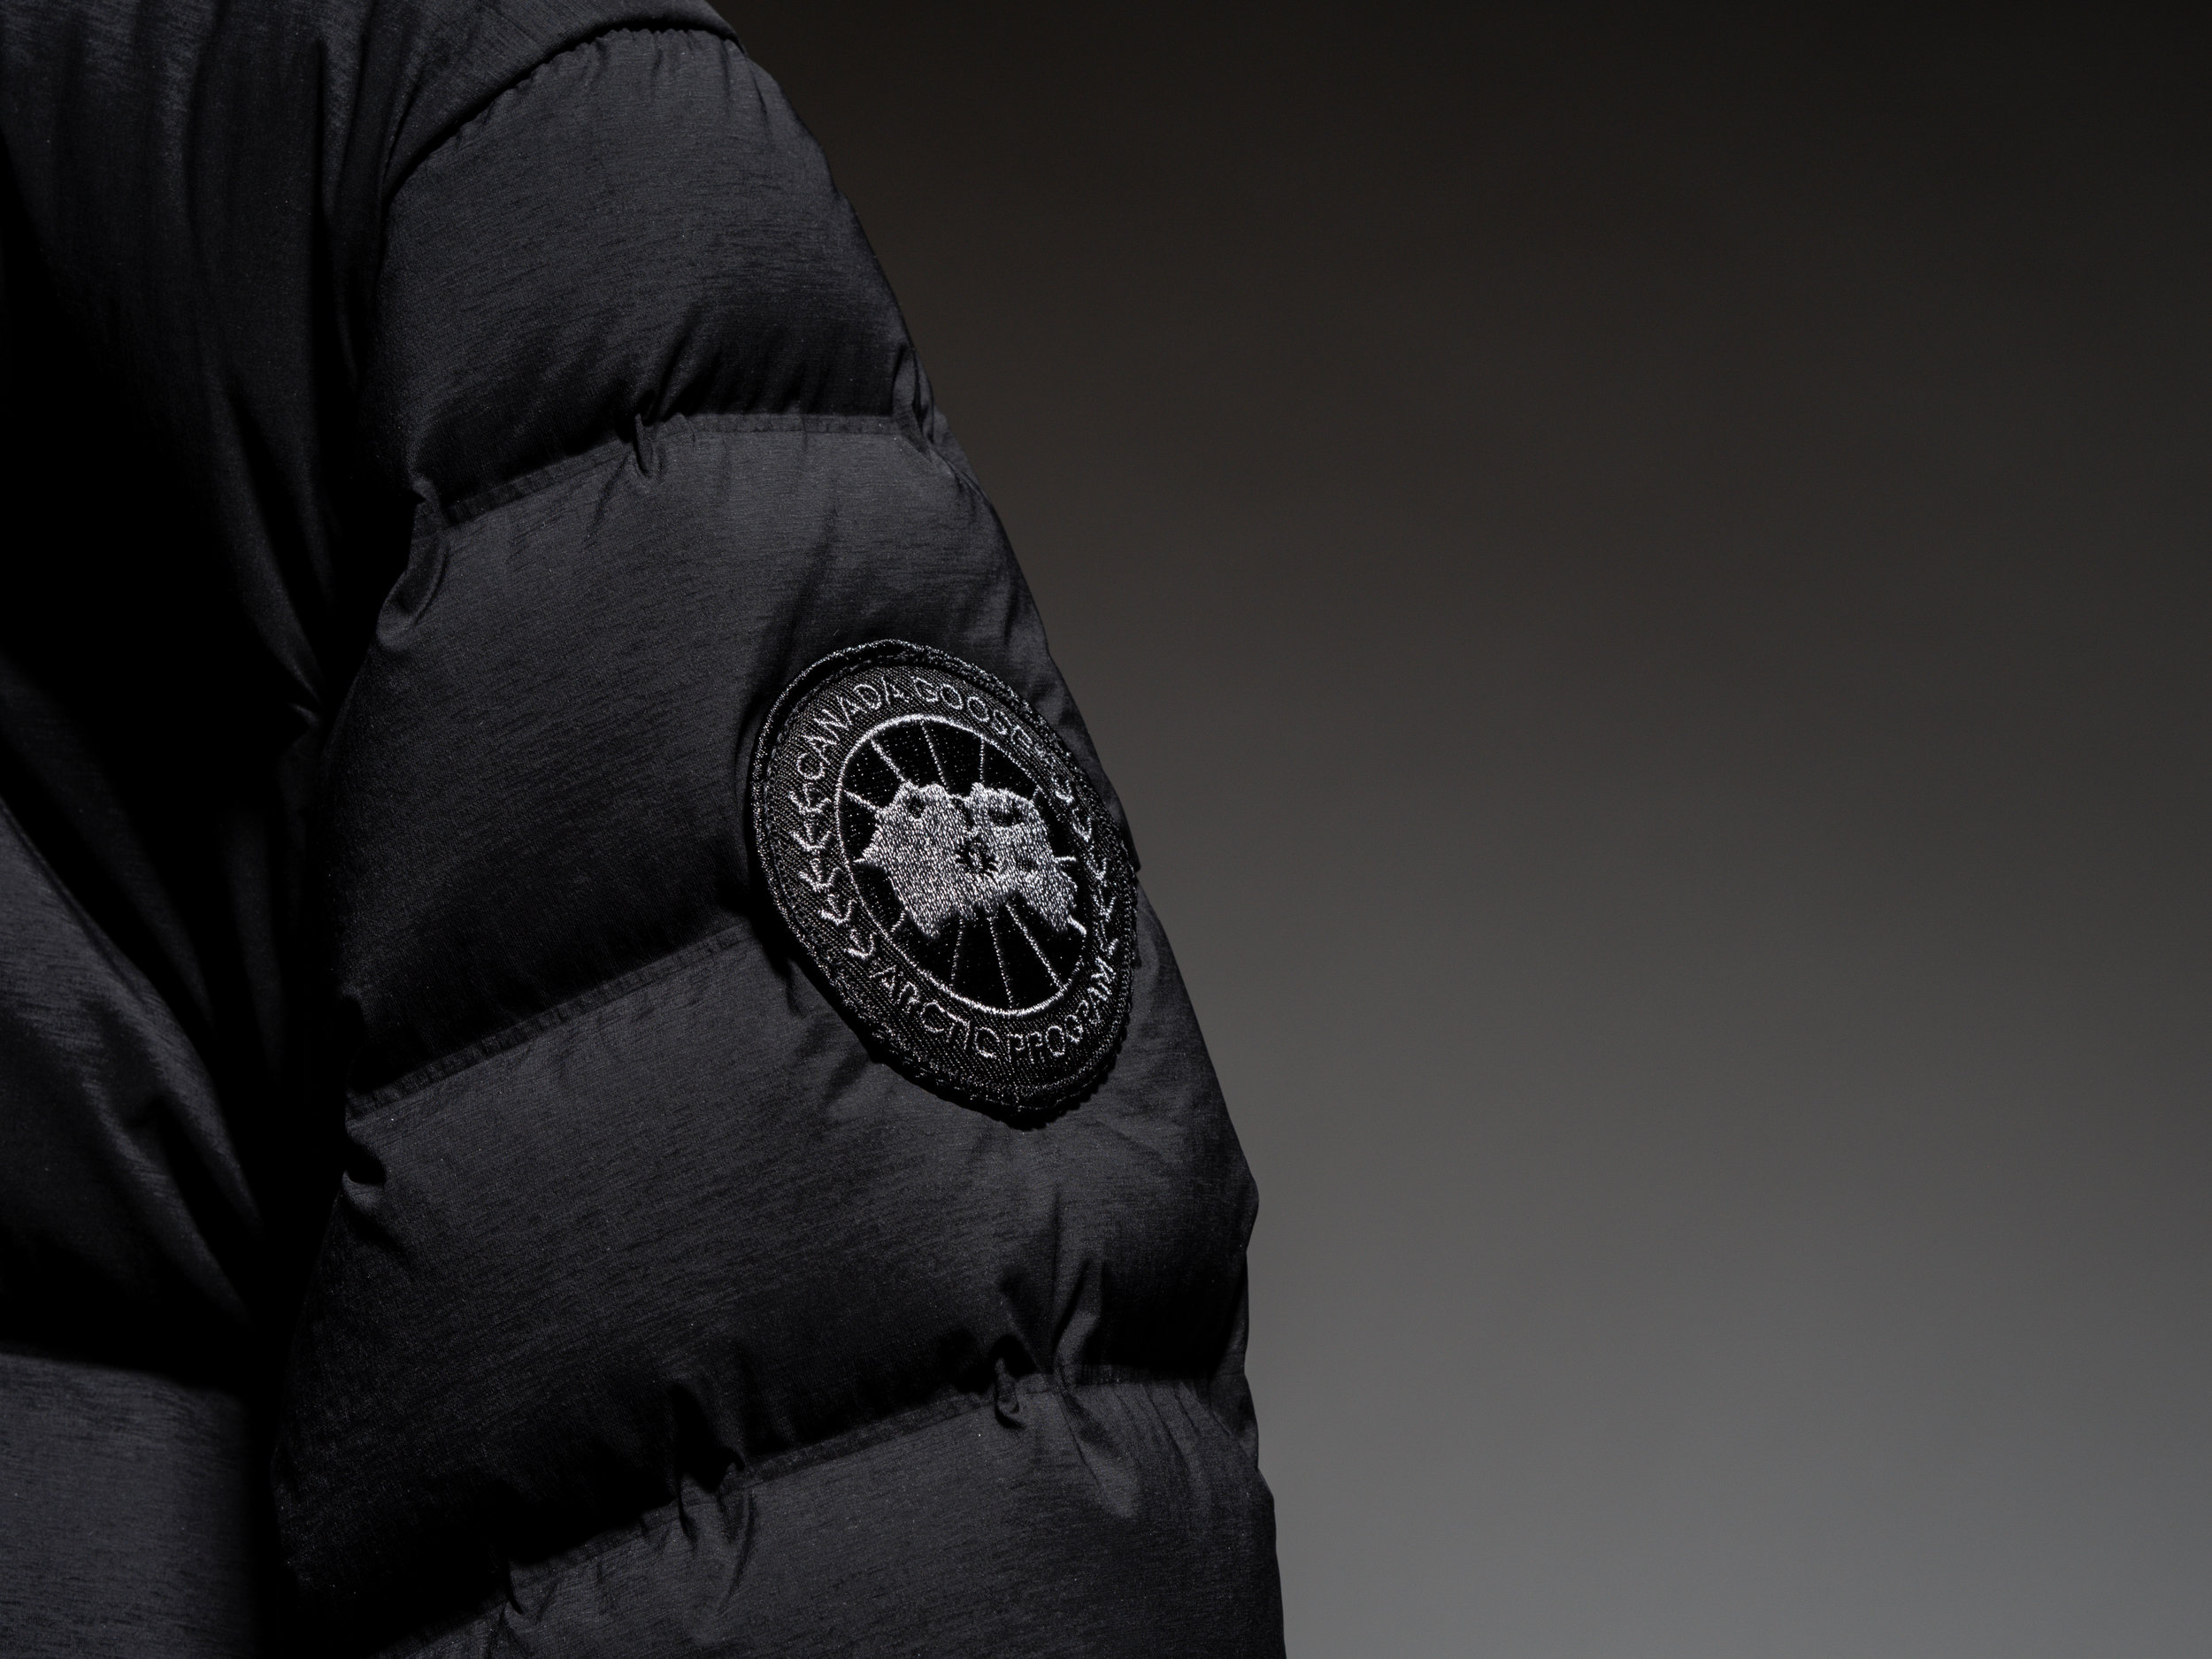 CANADA GOOSE - Founded in 1957 by Sam Tick, Canada Goose invented the modern day parka and made its Canadian association inseparable. With strong ties to the Canadian Arctic, northern communities, and the worlds of mountaineering and outdoor film, Canada Goose has established itself as being the maker of the warmest jackets for the harshest climates. Despite the increasing demand for their product, as Canada Goose enters the luxury apparel market, their Made in Canada commitment is further solidified by their recent acquisition and opening of brand new factories in Winnipeg and Montreal.